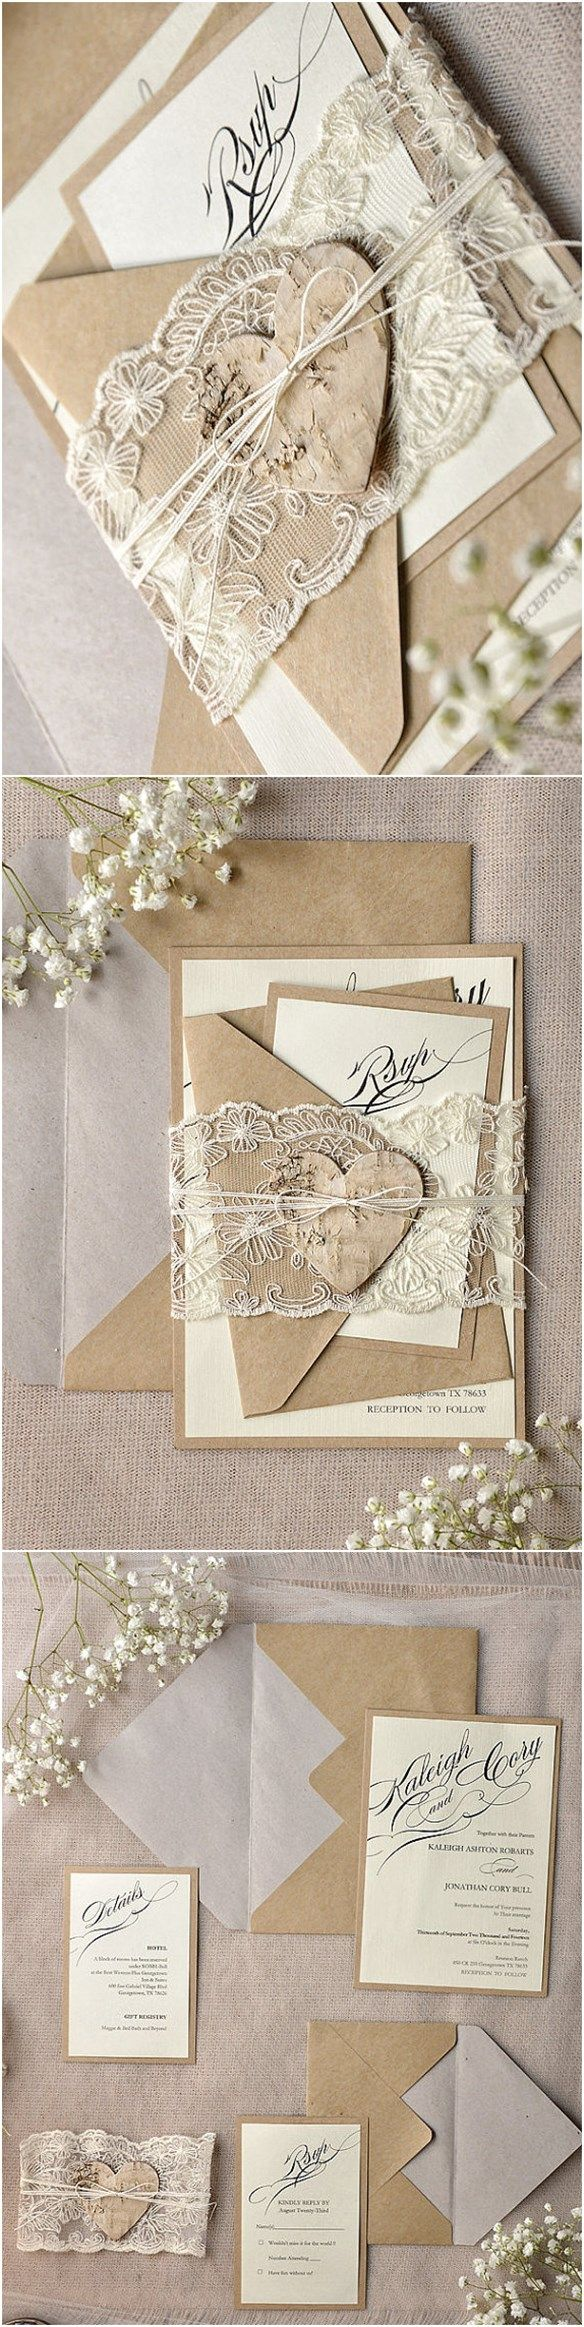 Rustic Calligraphy Recycled Lace Wedding Invitation Kits - Deer Pearl Flowers